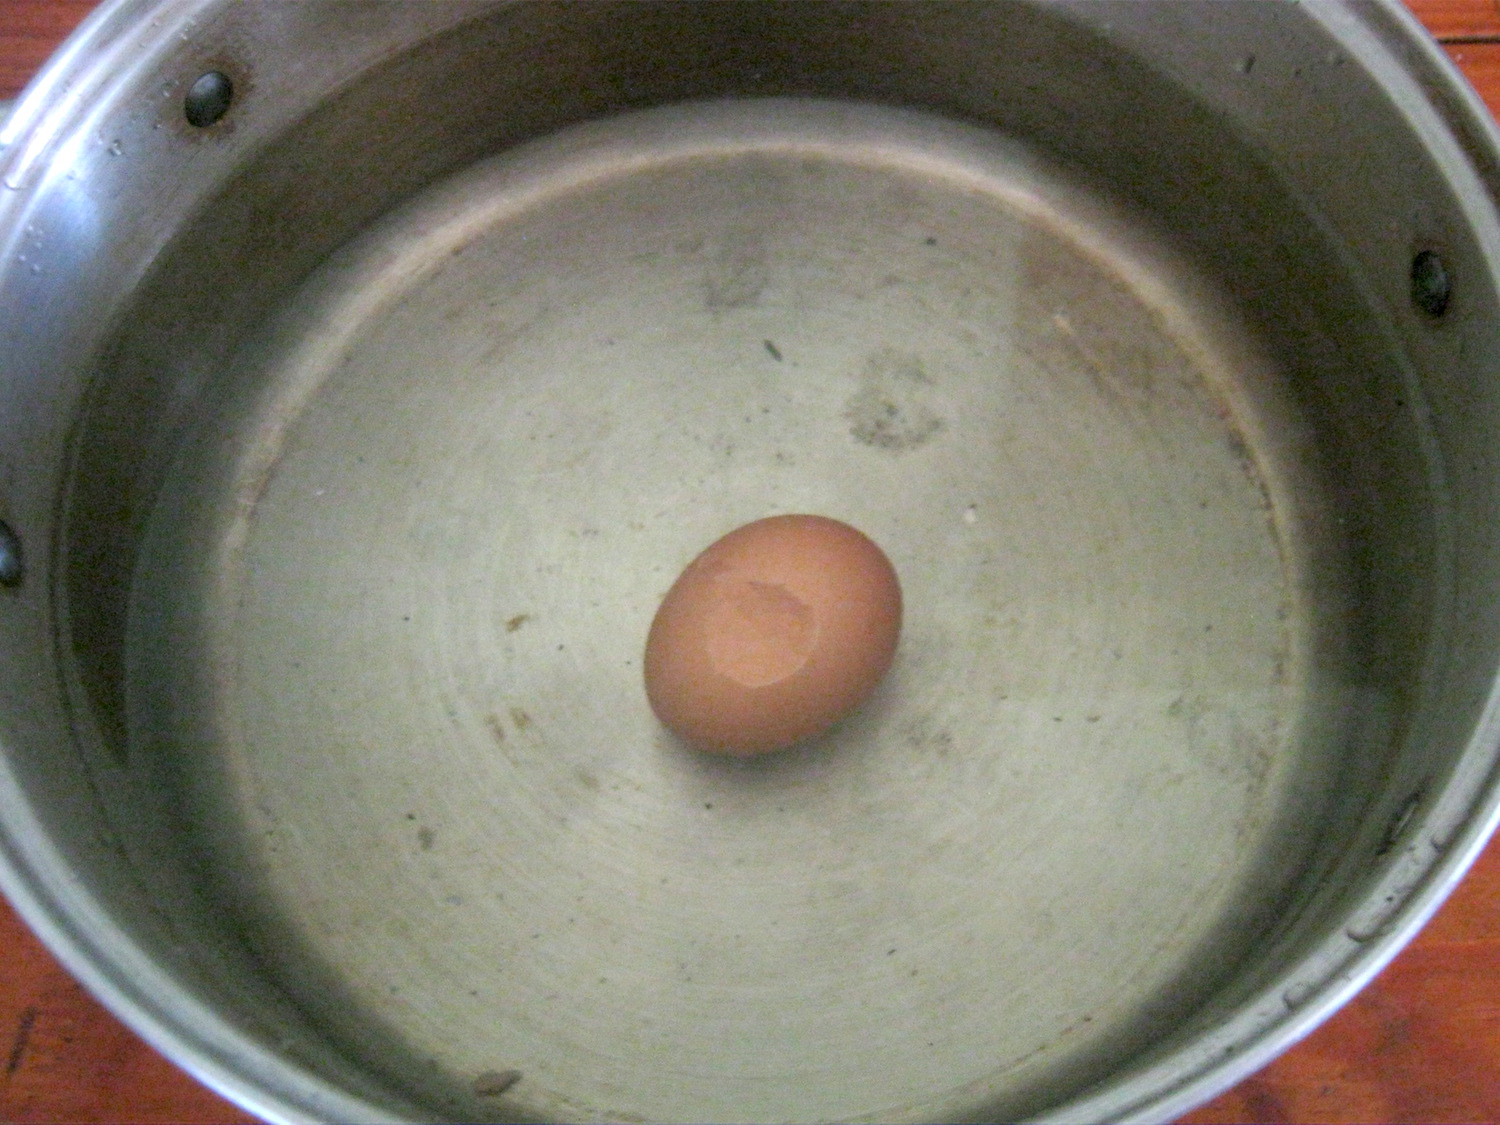 Boiled egg with cracked skin in pot with cold water